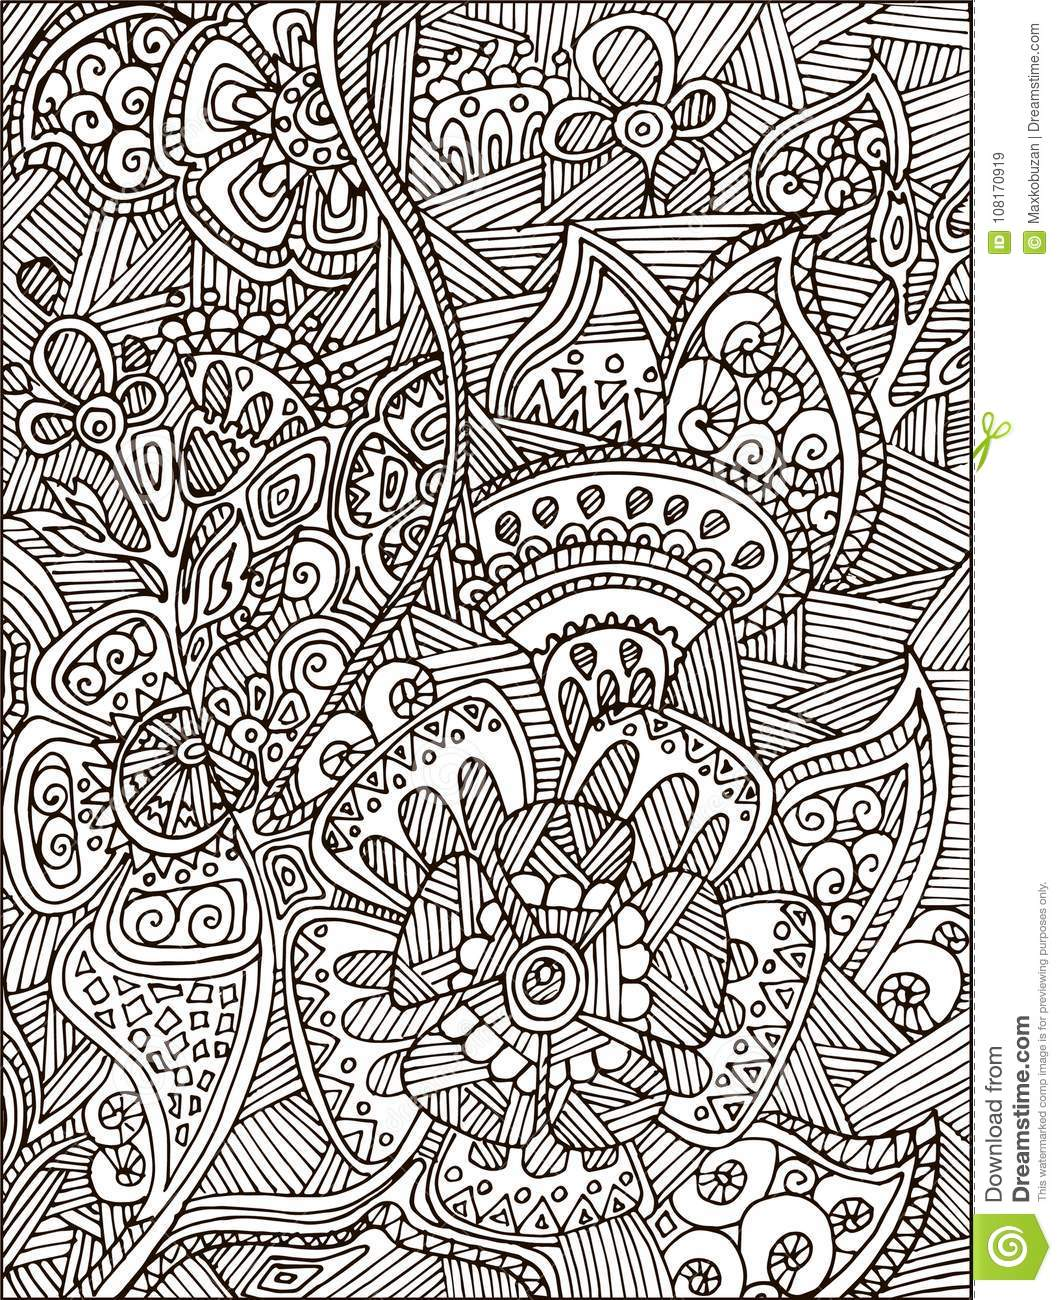 adult coloring book page adults kids black vector illustration template fantastic flowers black vector illustration